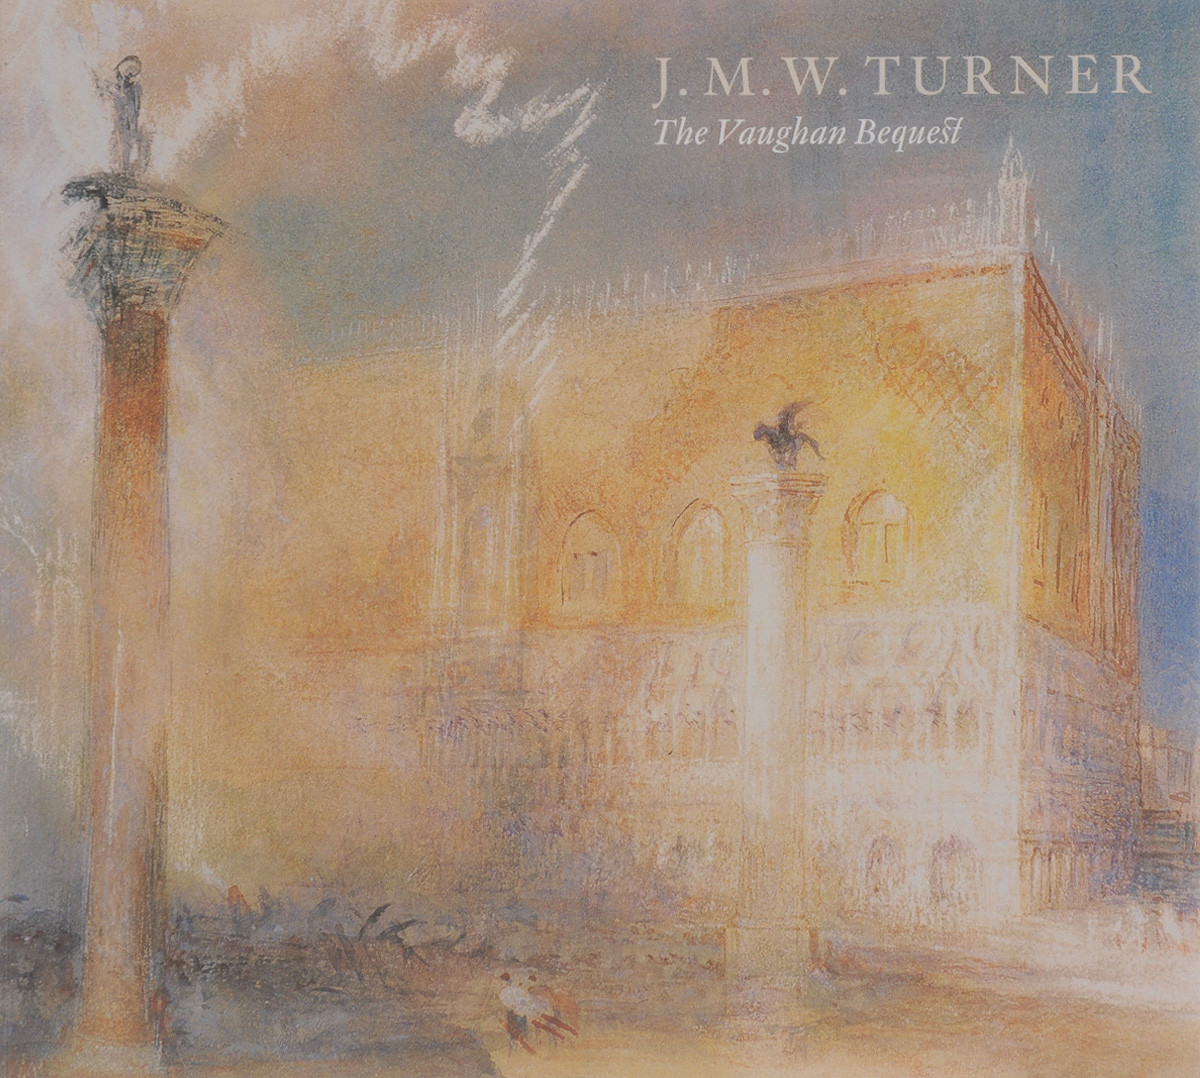 J. M. W. Turner: The Vaughan Bequest a landscape overview of antoniadis garden